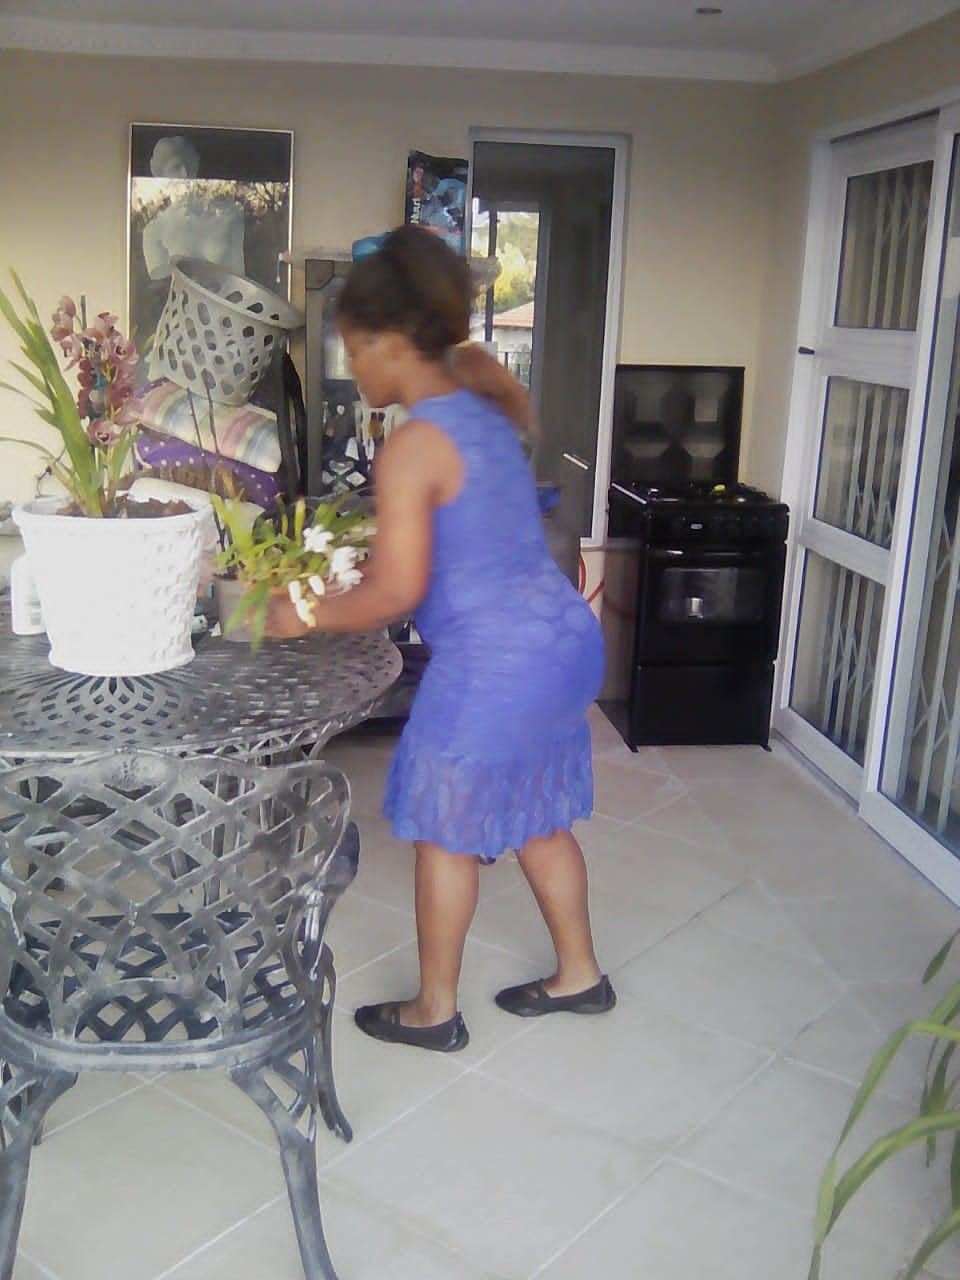 RELIABLE DOMESTIC WORKER